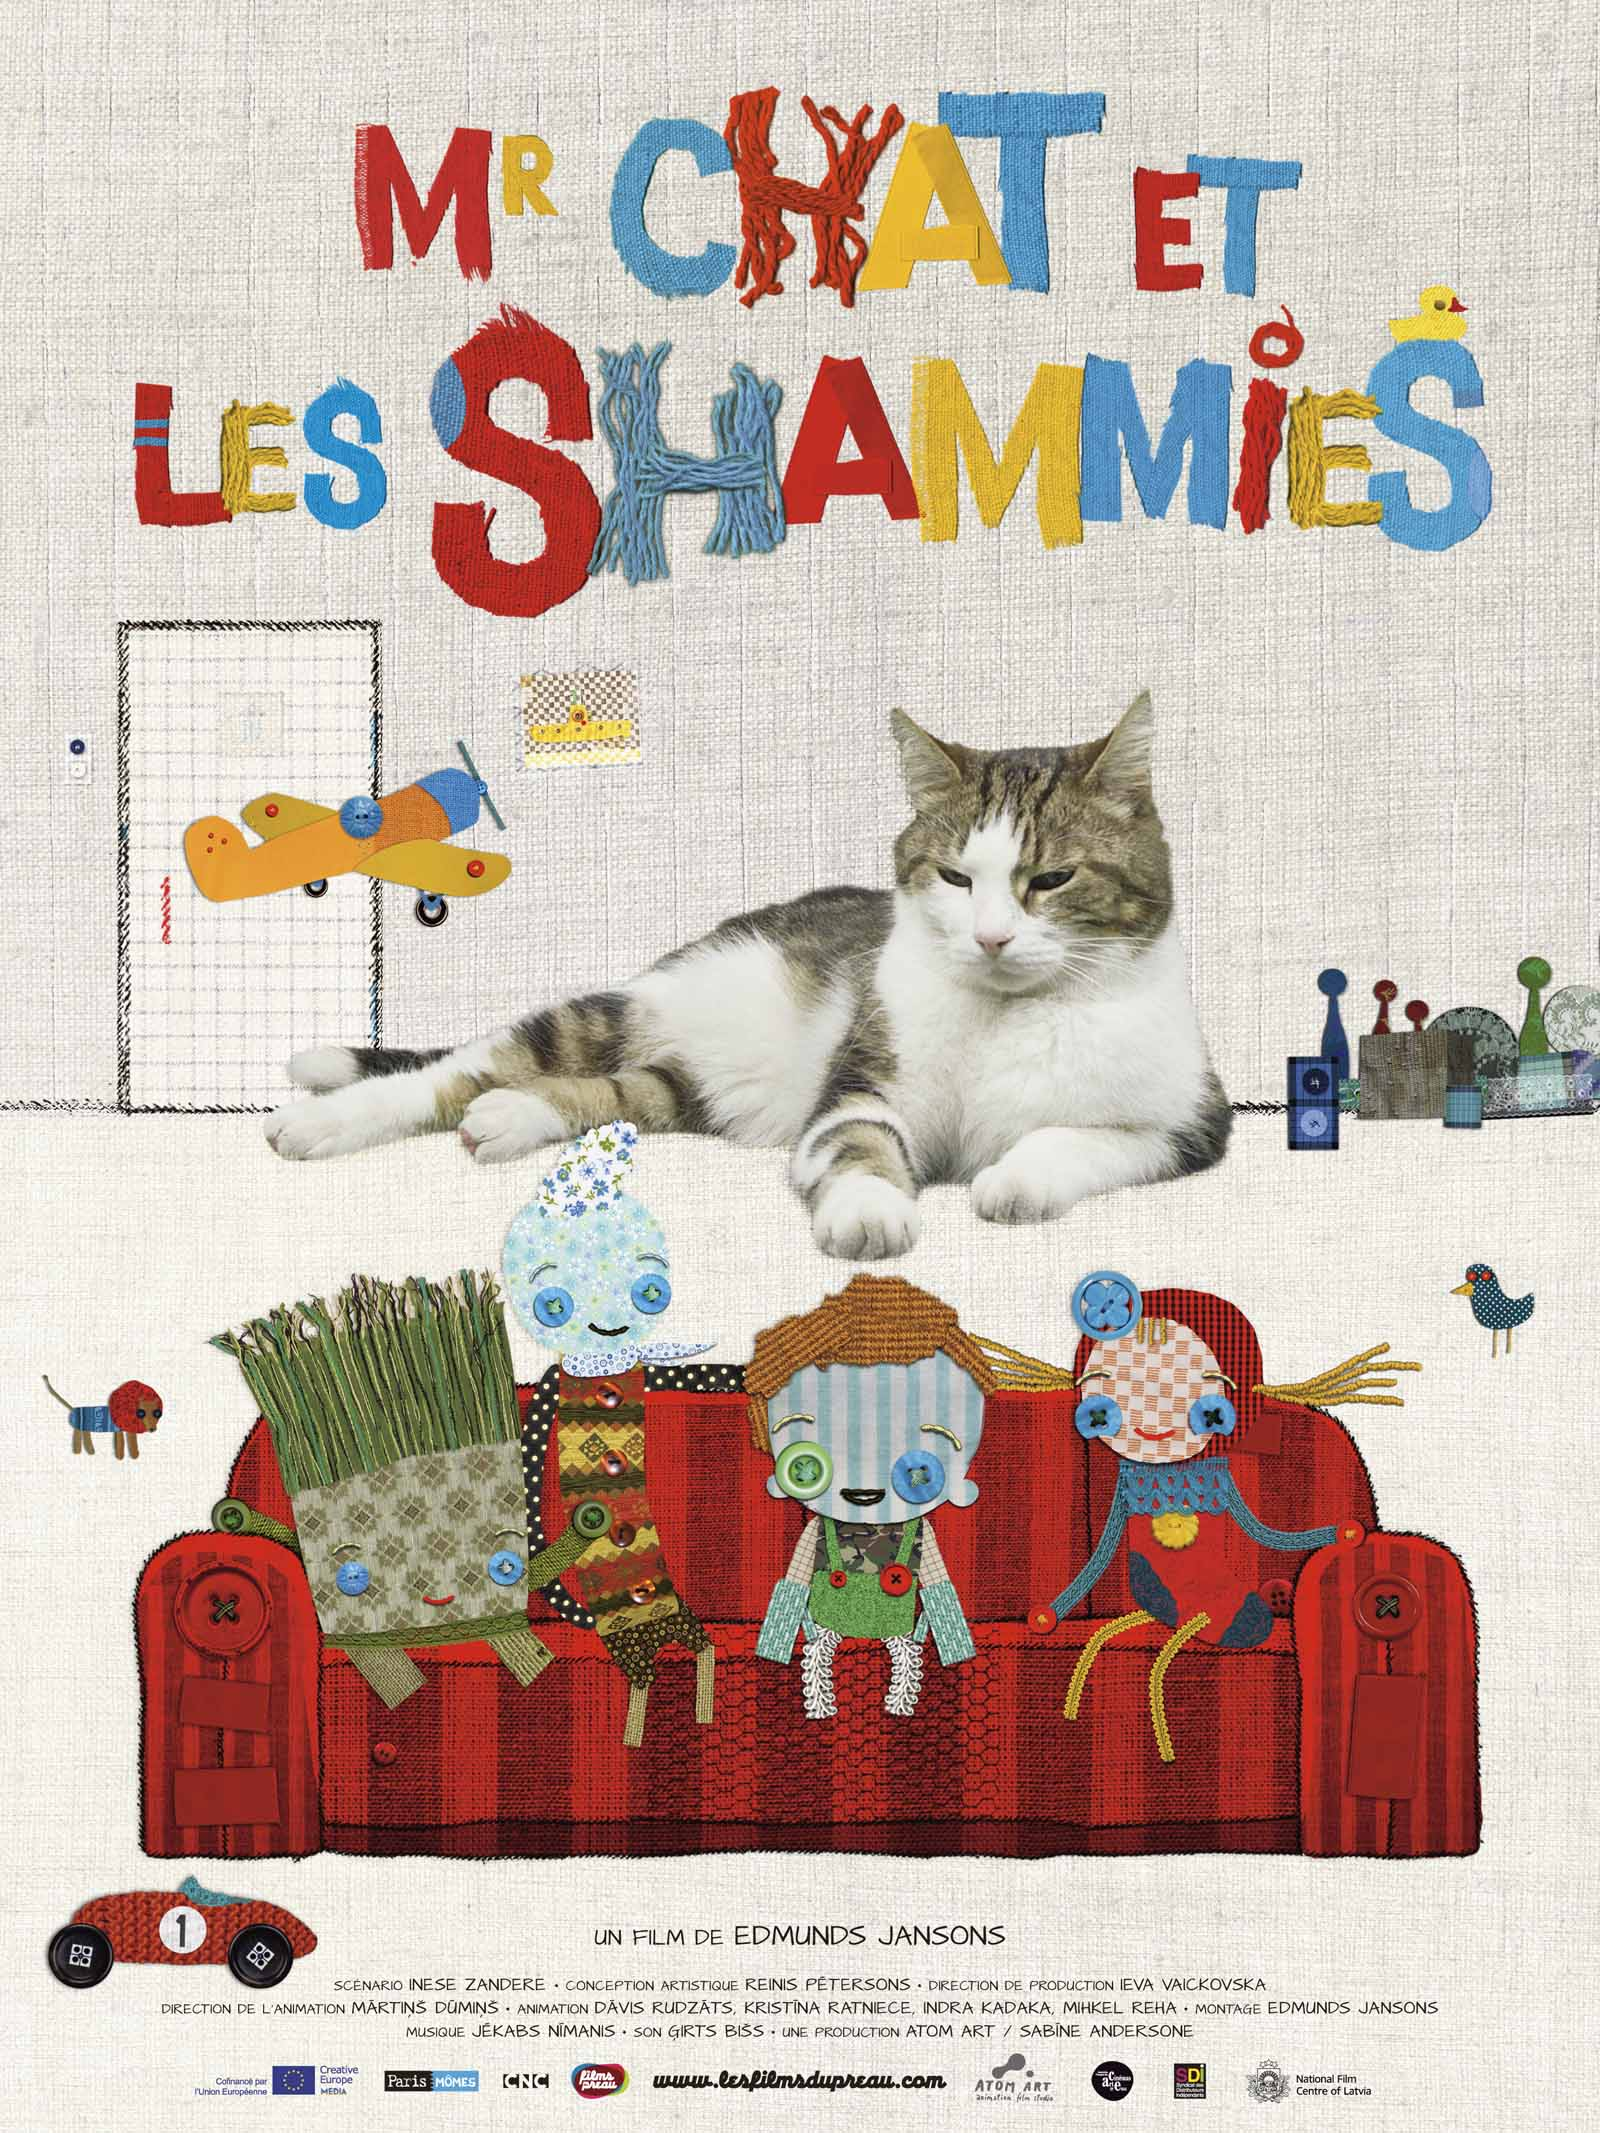 Mr Chat et les Shammies